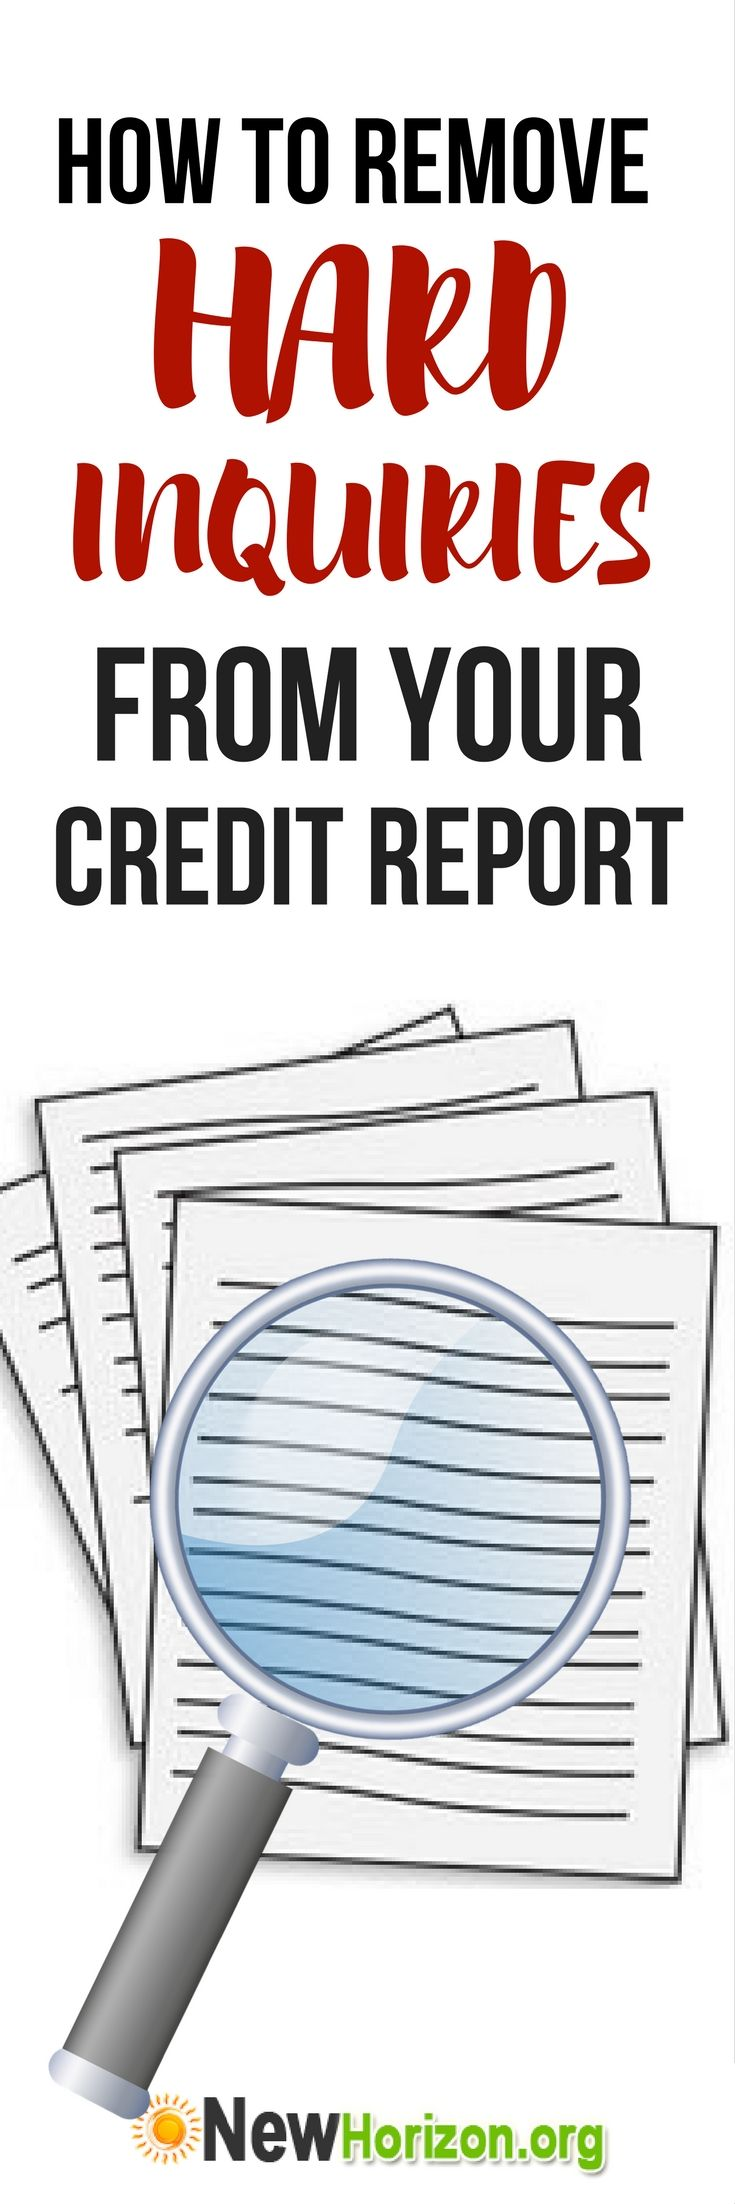 How to remove unauthorized credit inquiries from your